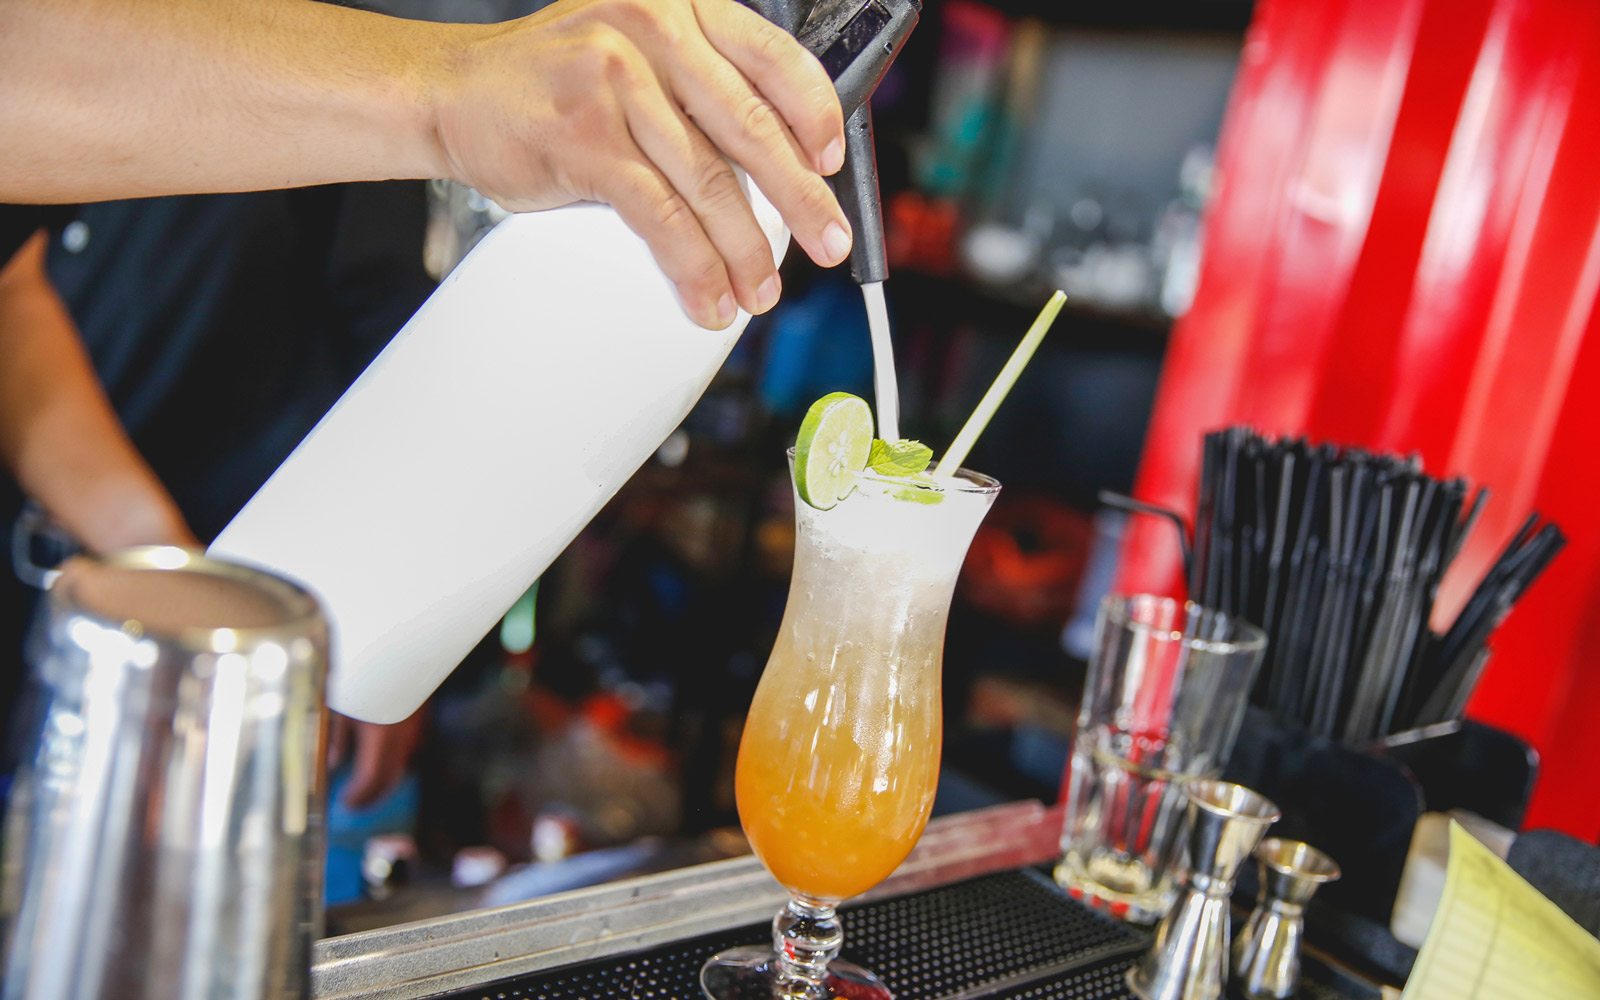 The 10 Drinks You Should Never Order at a Bar